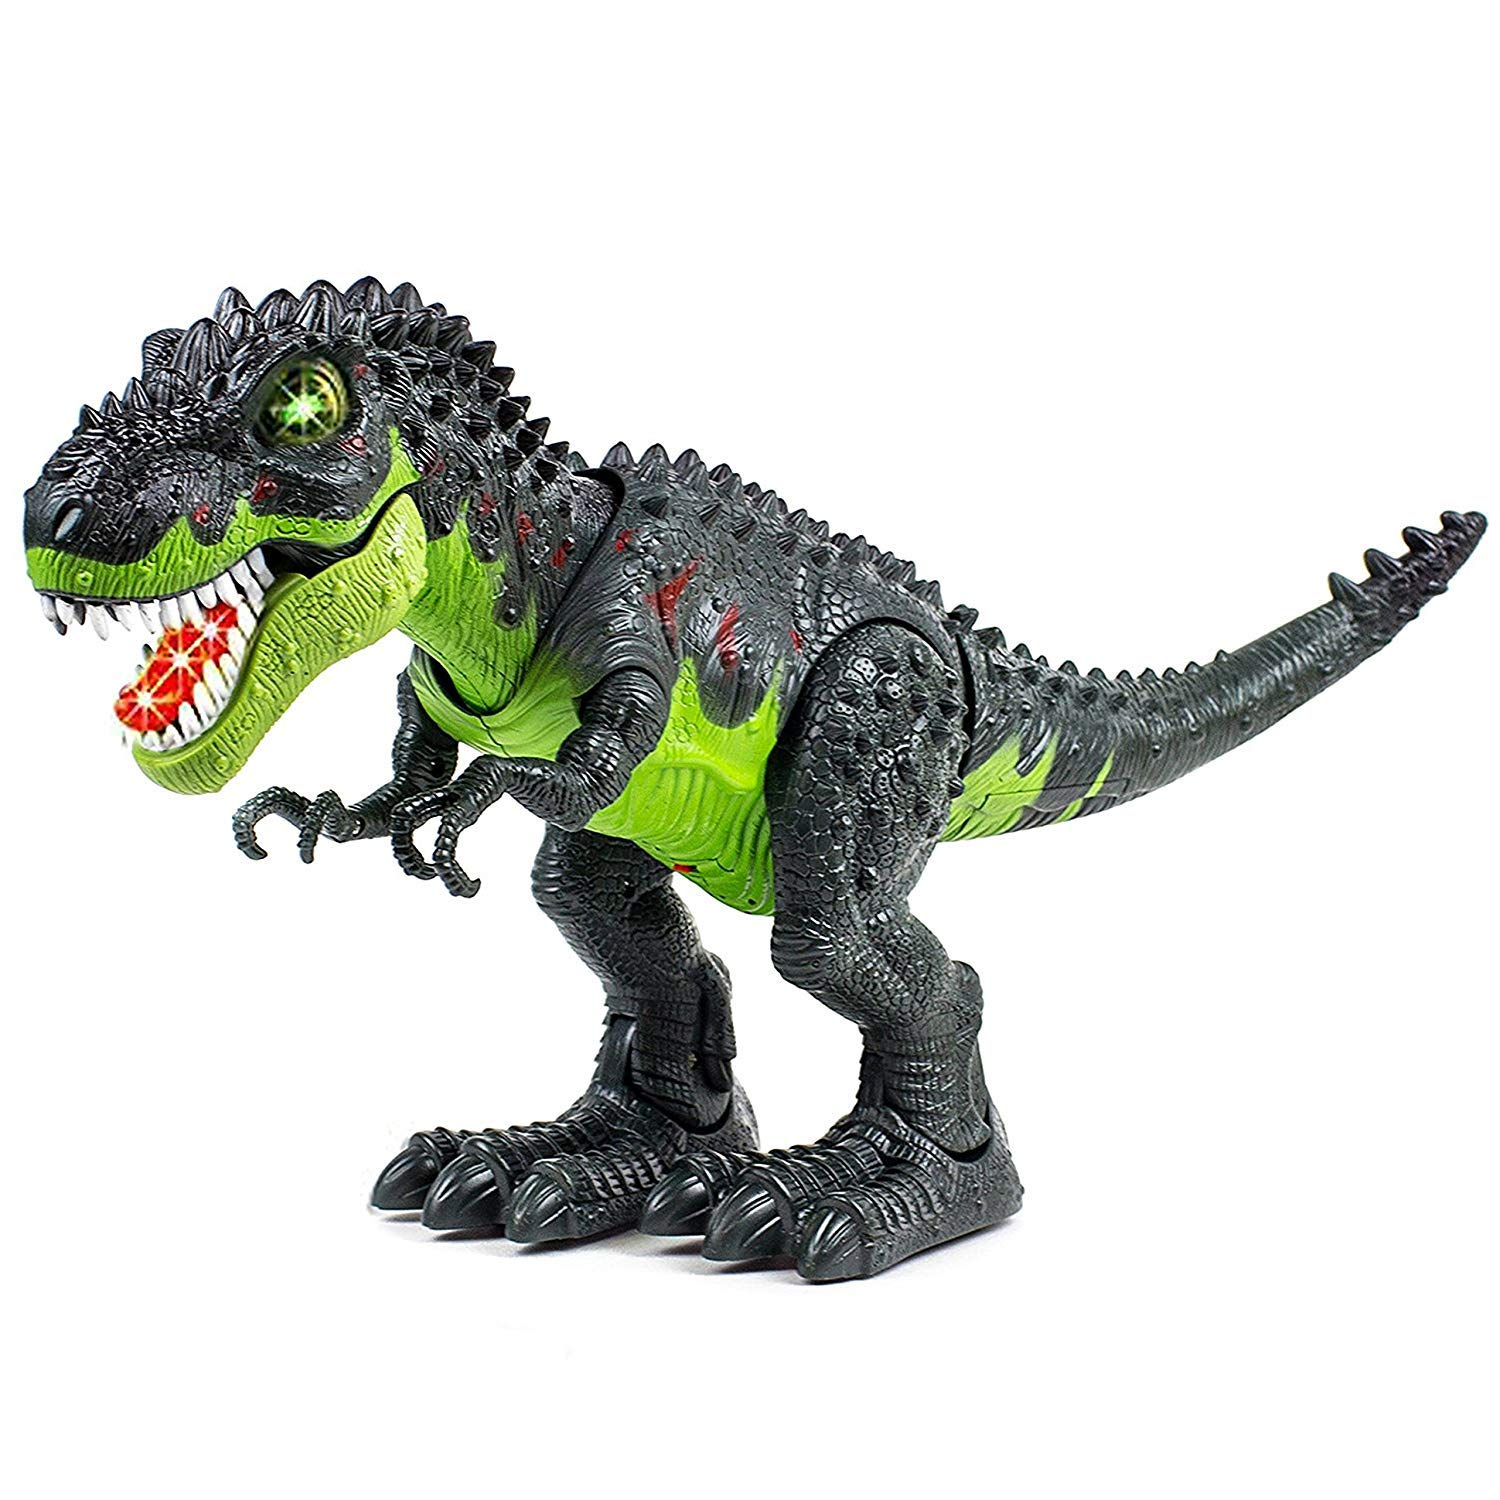 SY WonderPlay Tyrannosaurus T-Rex Dinosaur with Lights and Realistic Sounds Action Figure Toy - Light Up Eyes, Awesome Sounds - Walks on Its Own! - Great Gift Boys 3+,Battery Operate (Green) by SY (Image #3)